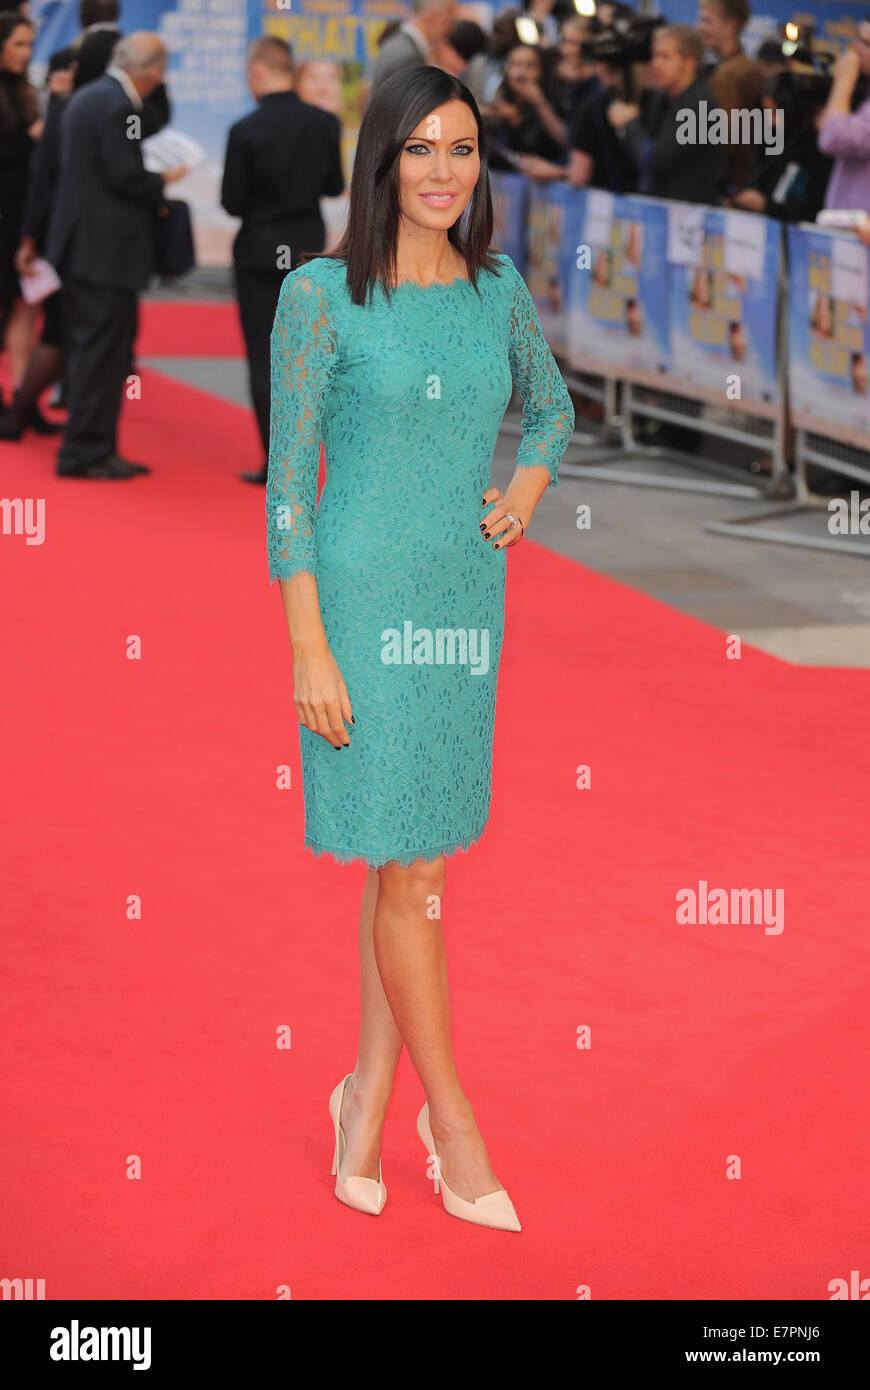 London, UK, UK. 22nd Sep, 2014. Linzi Stoppard attends UK premiere of 'What We Did On Our Holiday' at Odeon - Stock Image